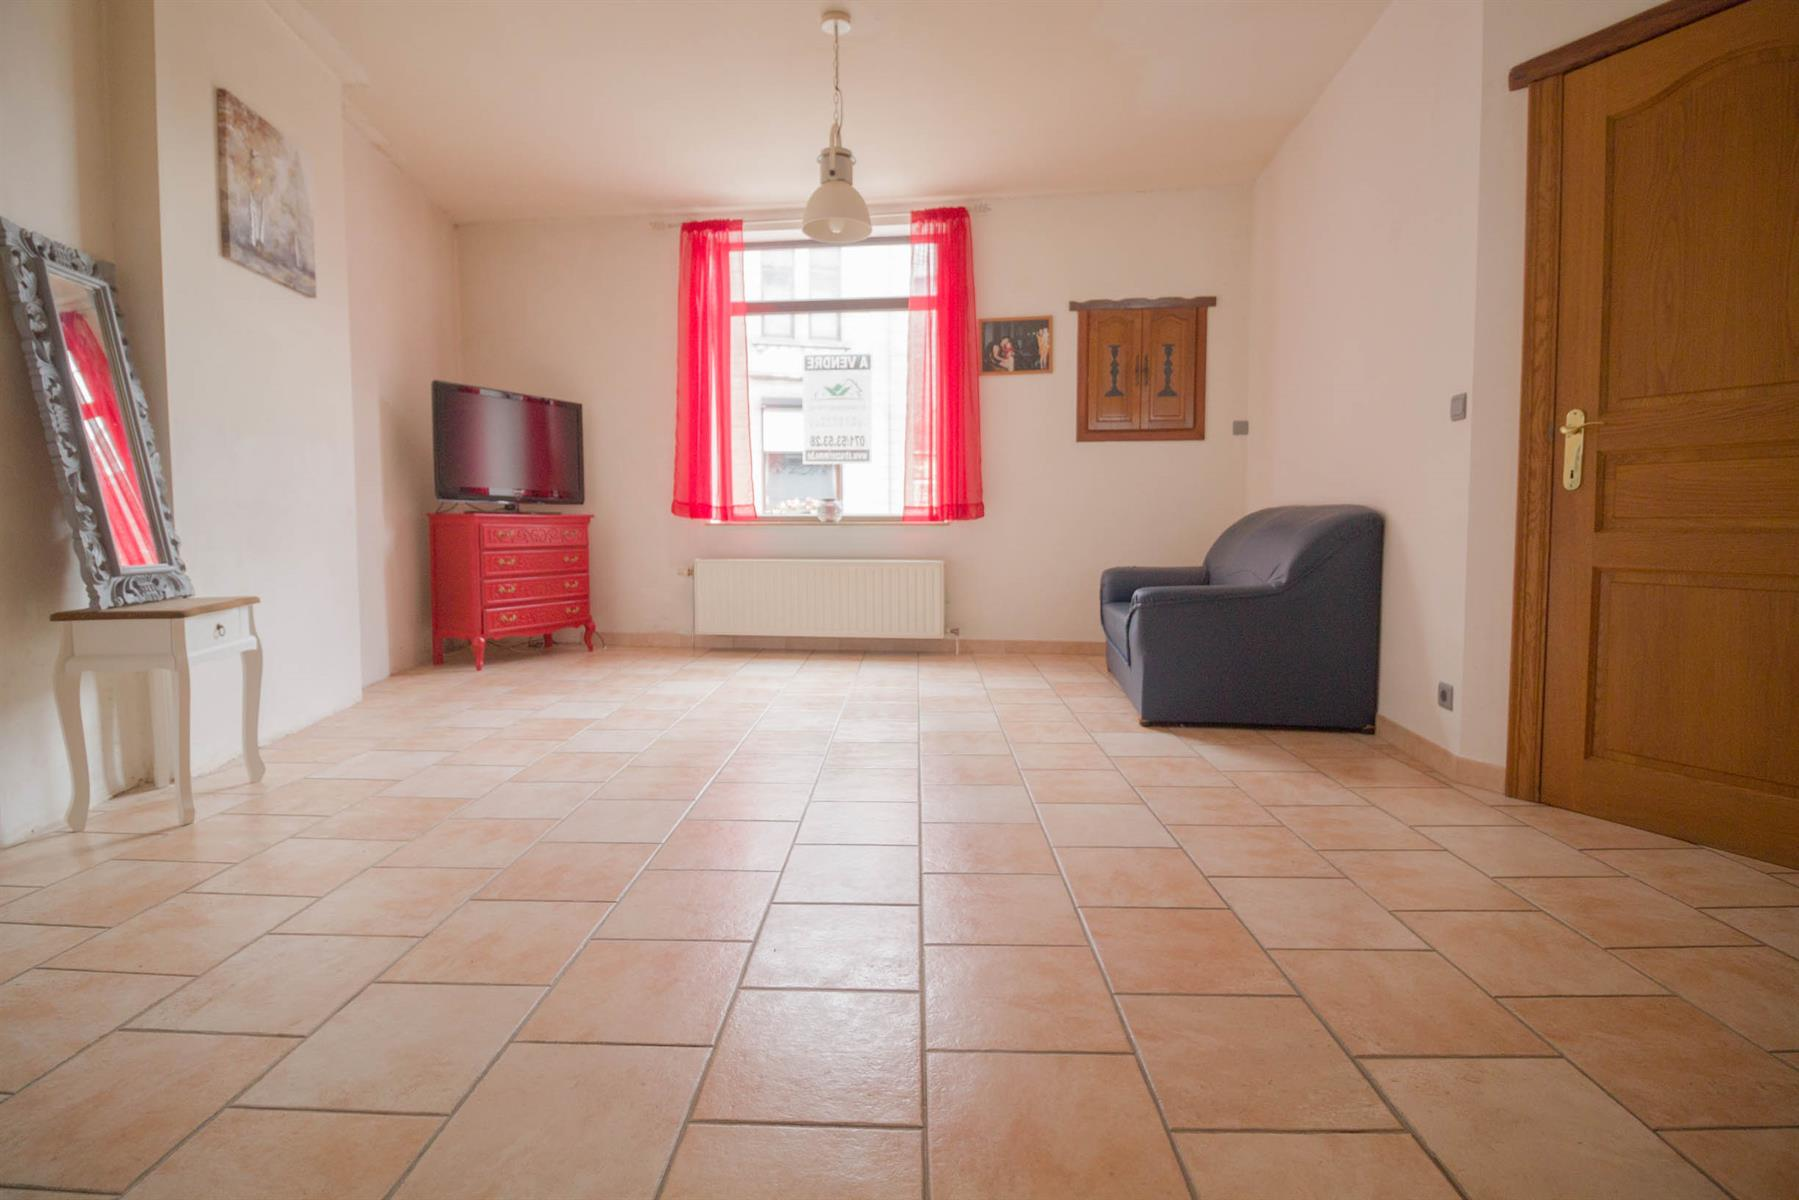 Maison - Courcelles (Trazegnies) - #4445047-1